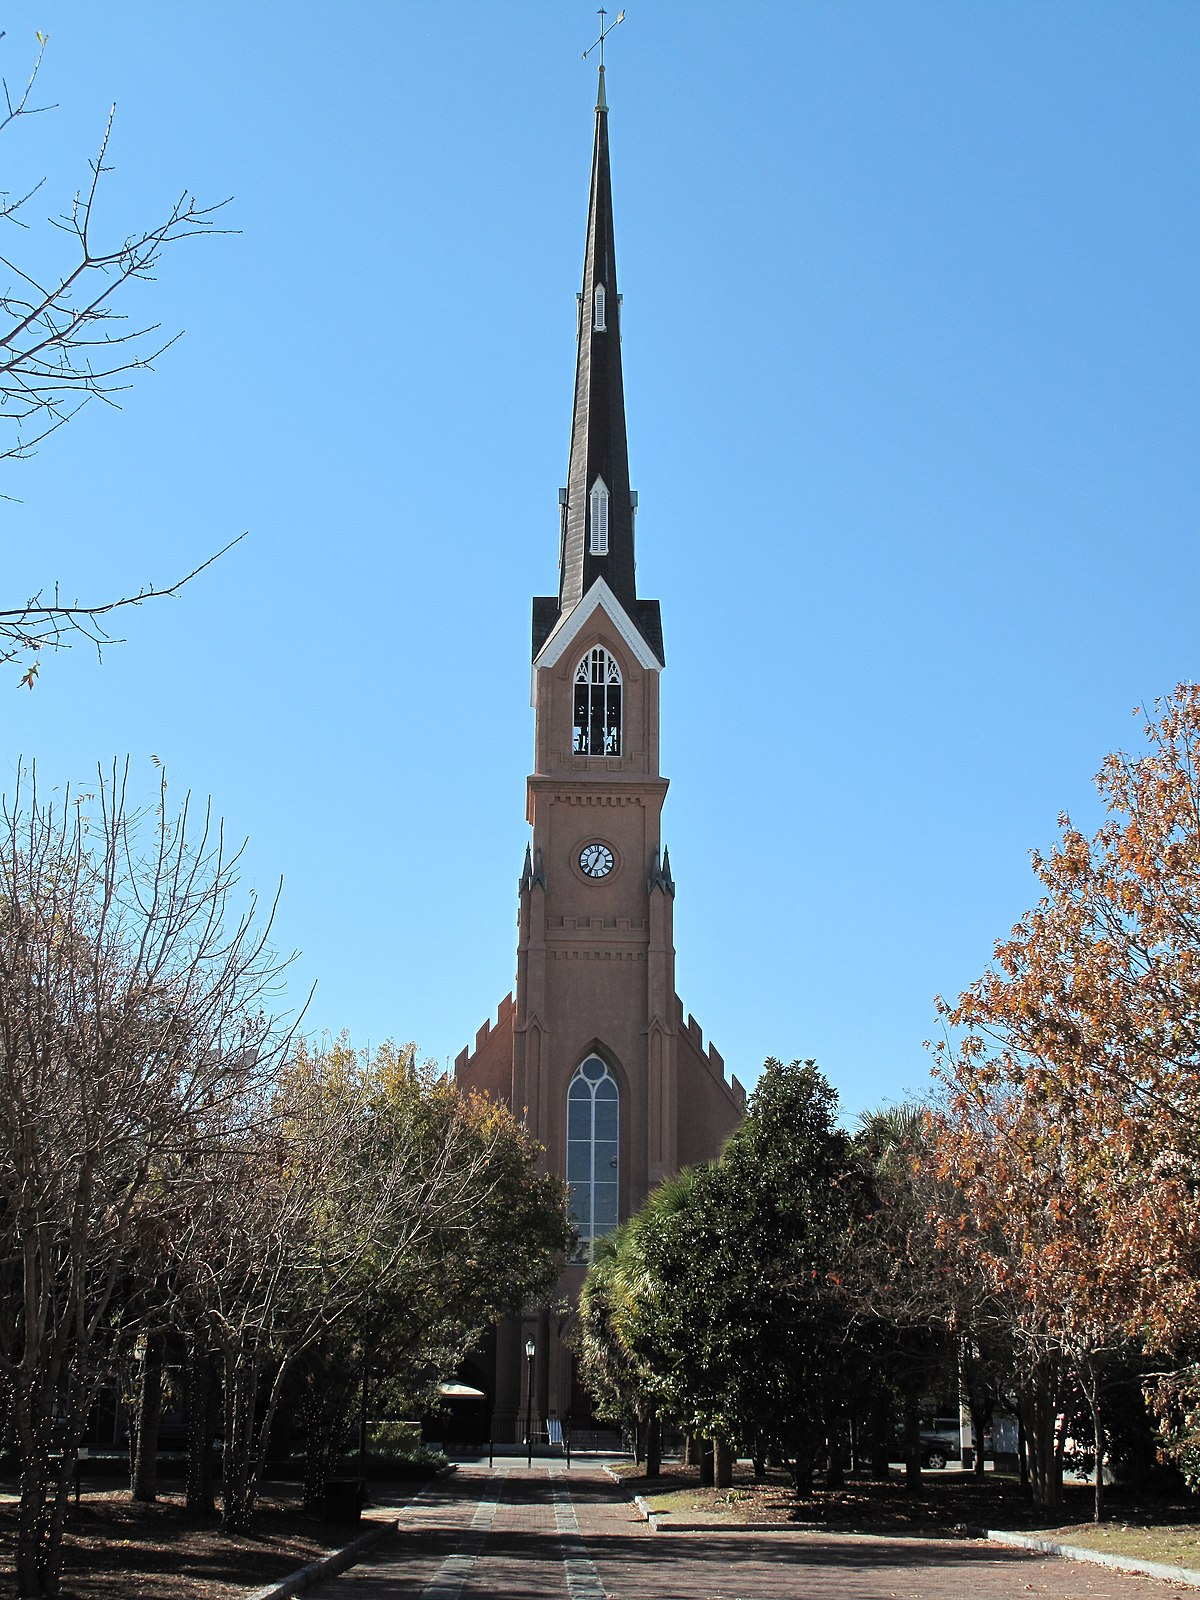 List Of Tallest Buildings In Charleston, South Carolina